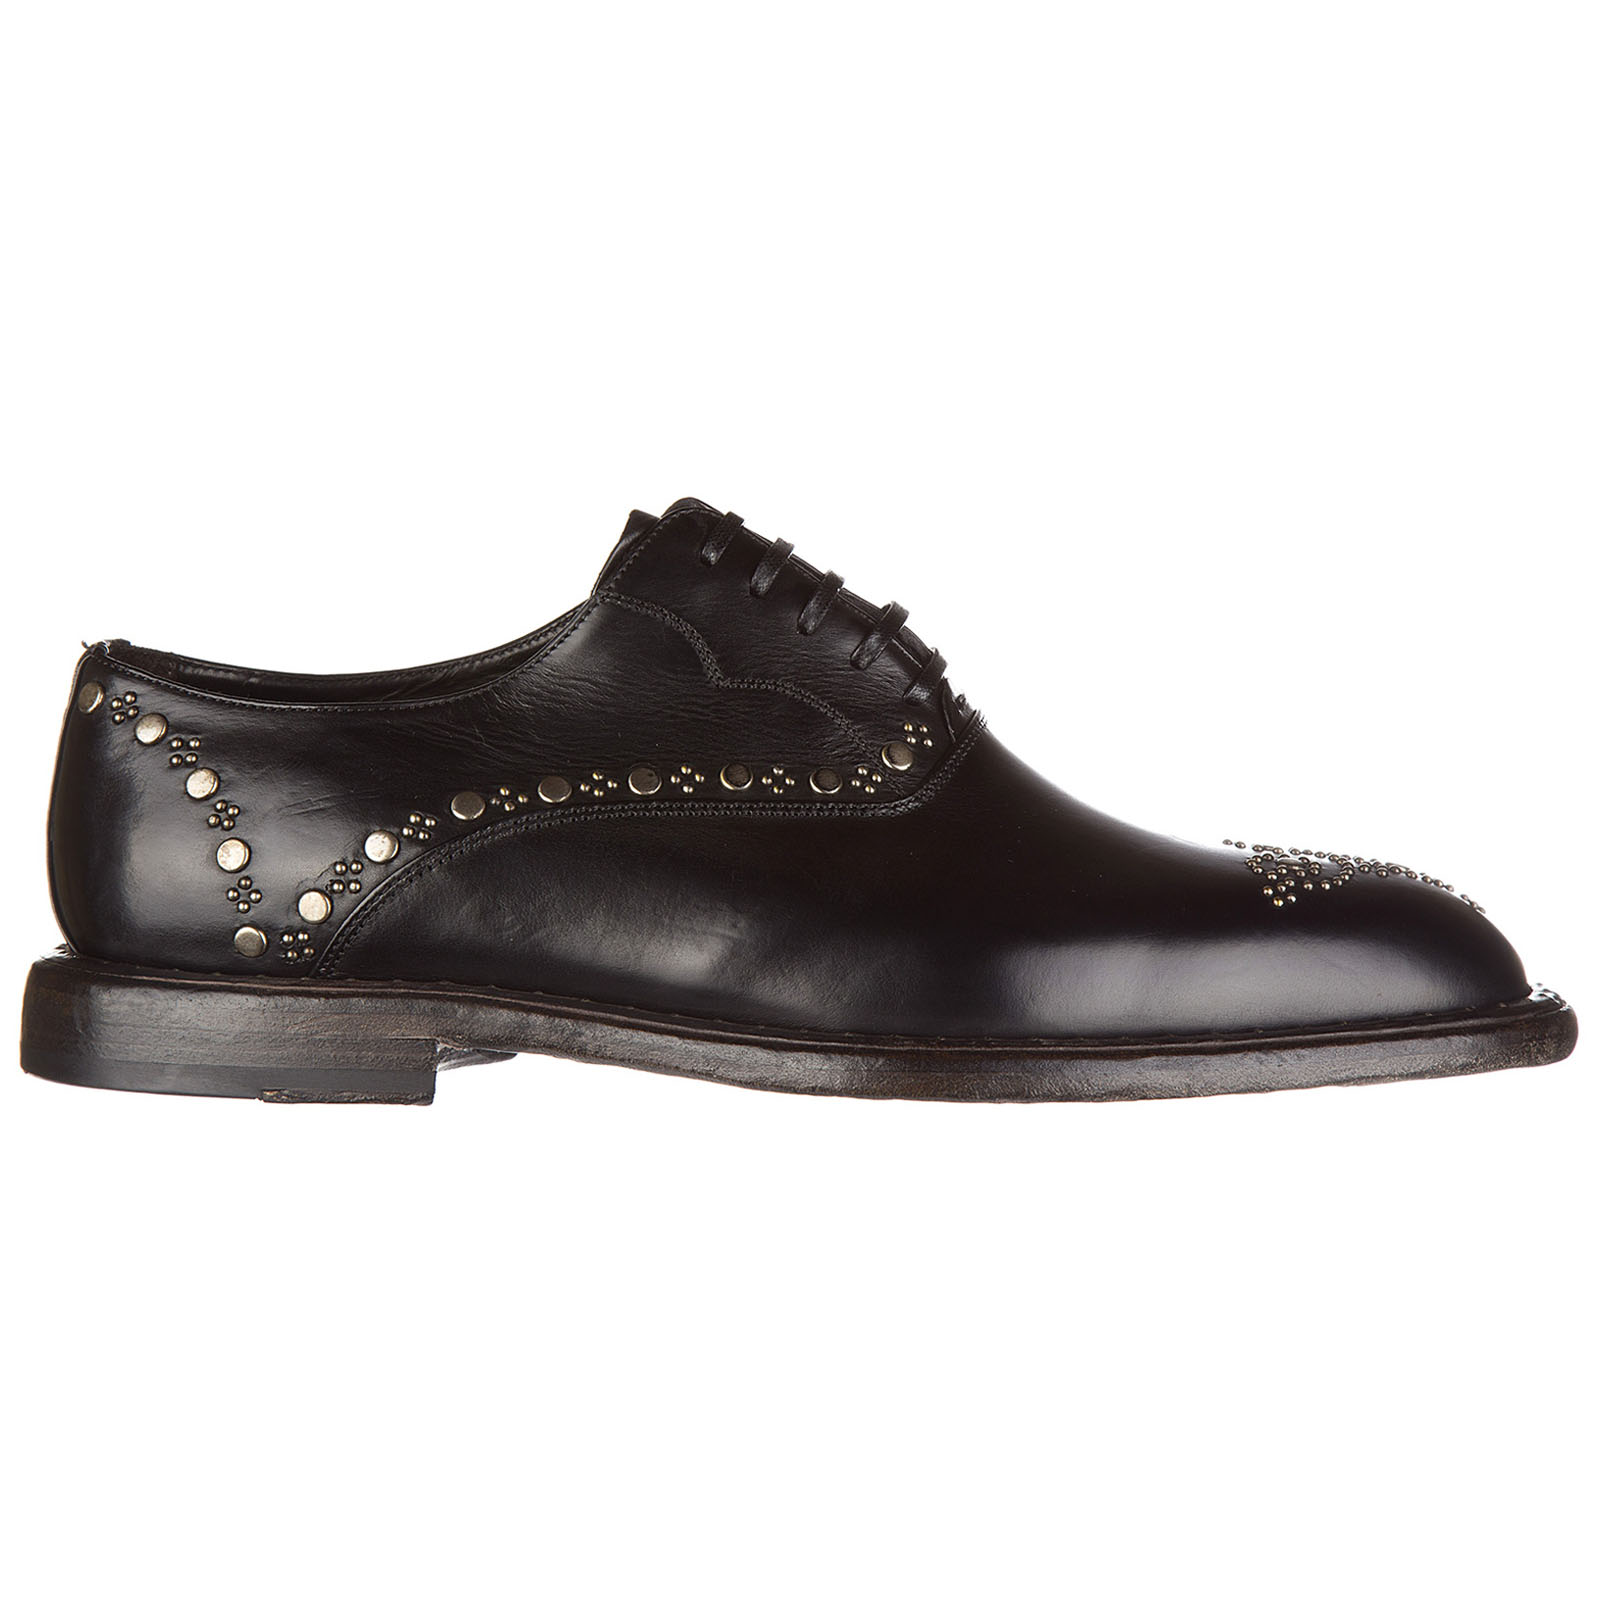 Men's classic leather lace up laced formal shoes francesina michelangelo tuffat